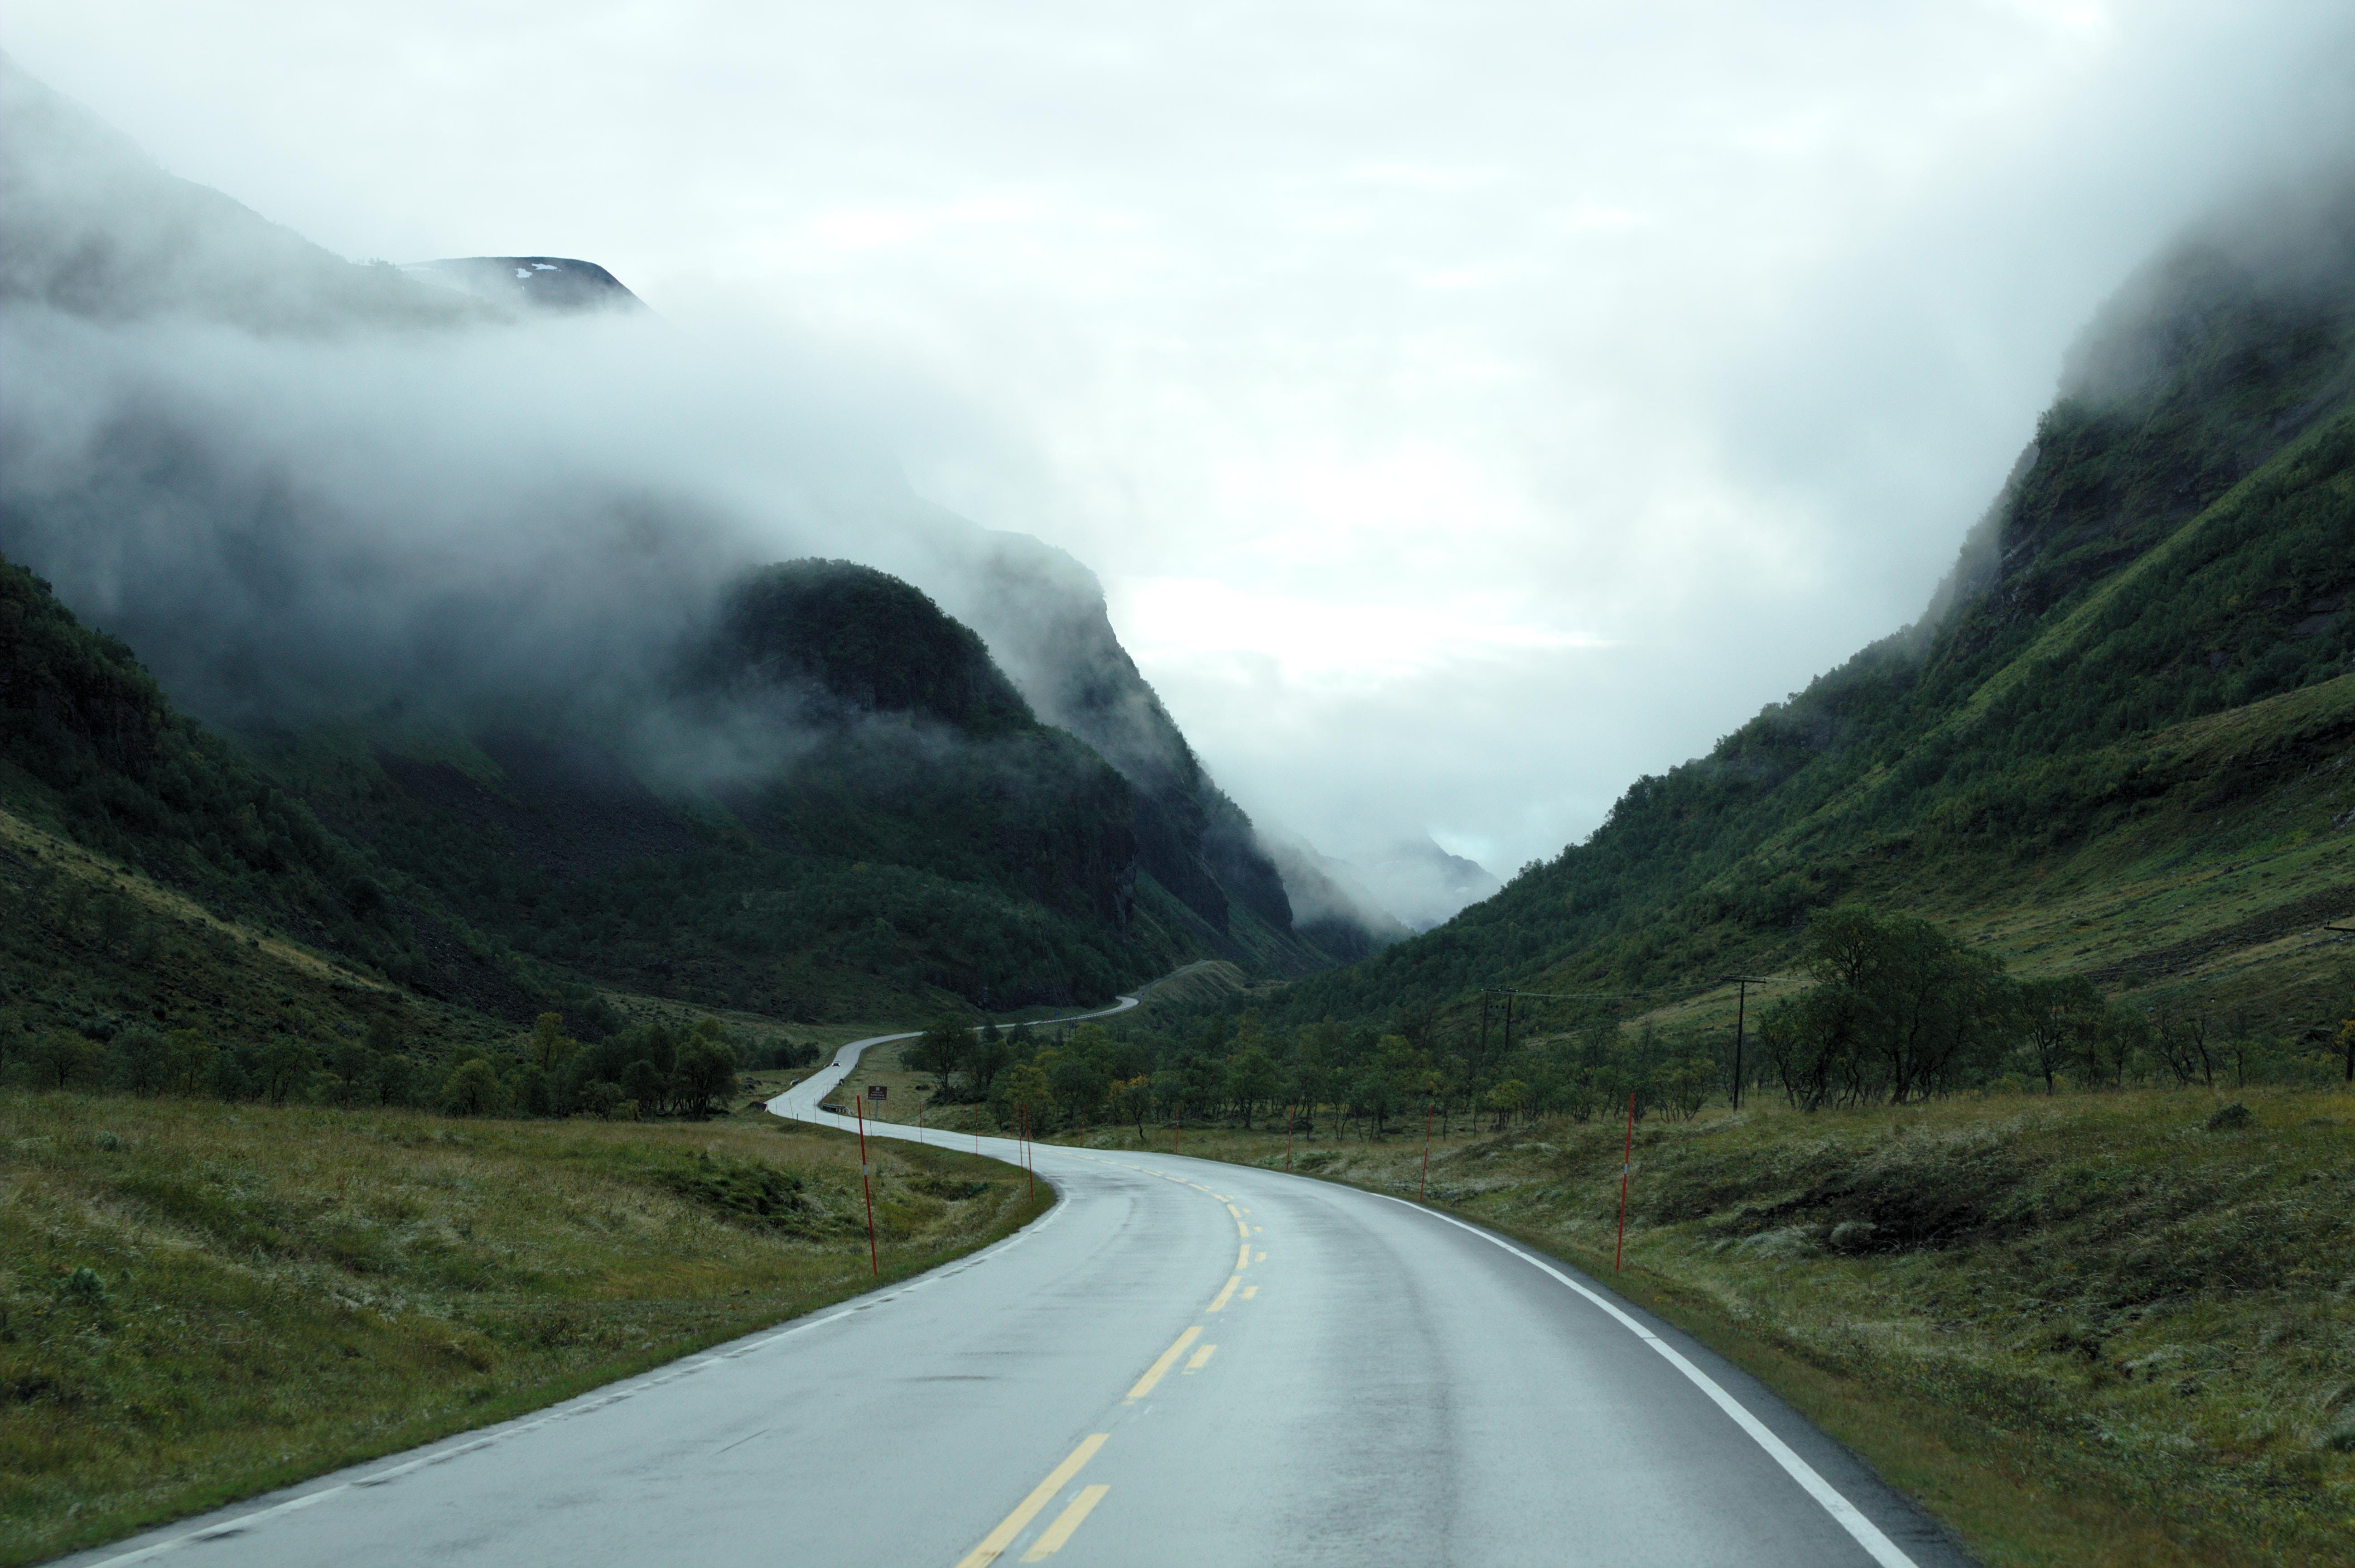 Gray Concrete Road Between Green Mountains Under White Clouds